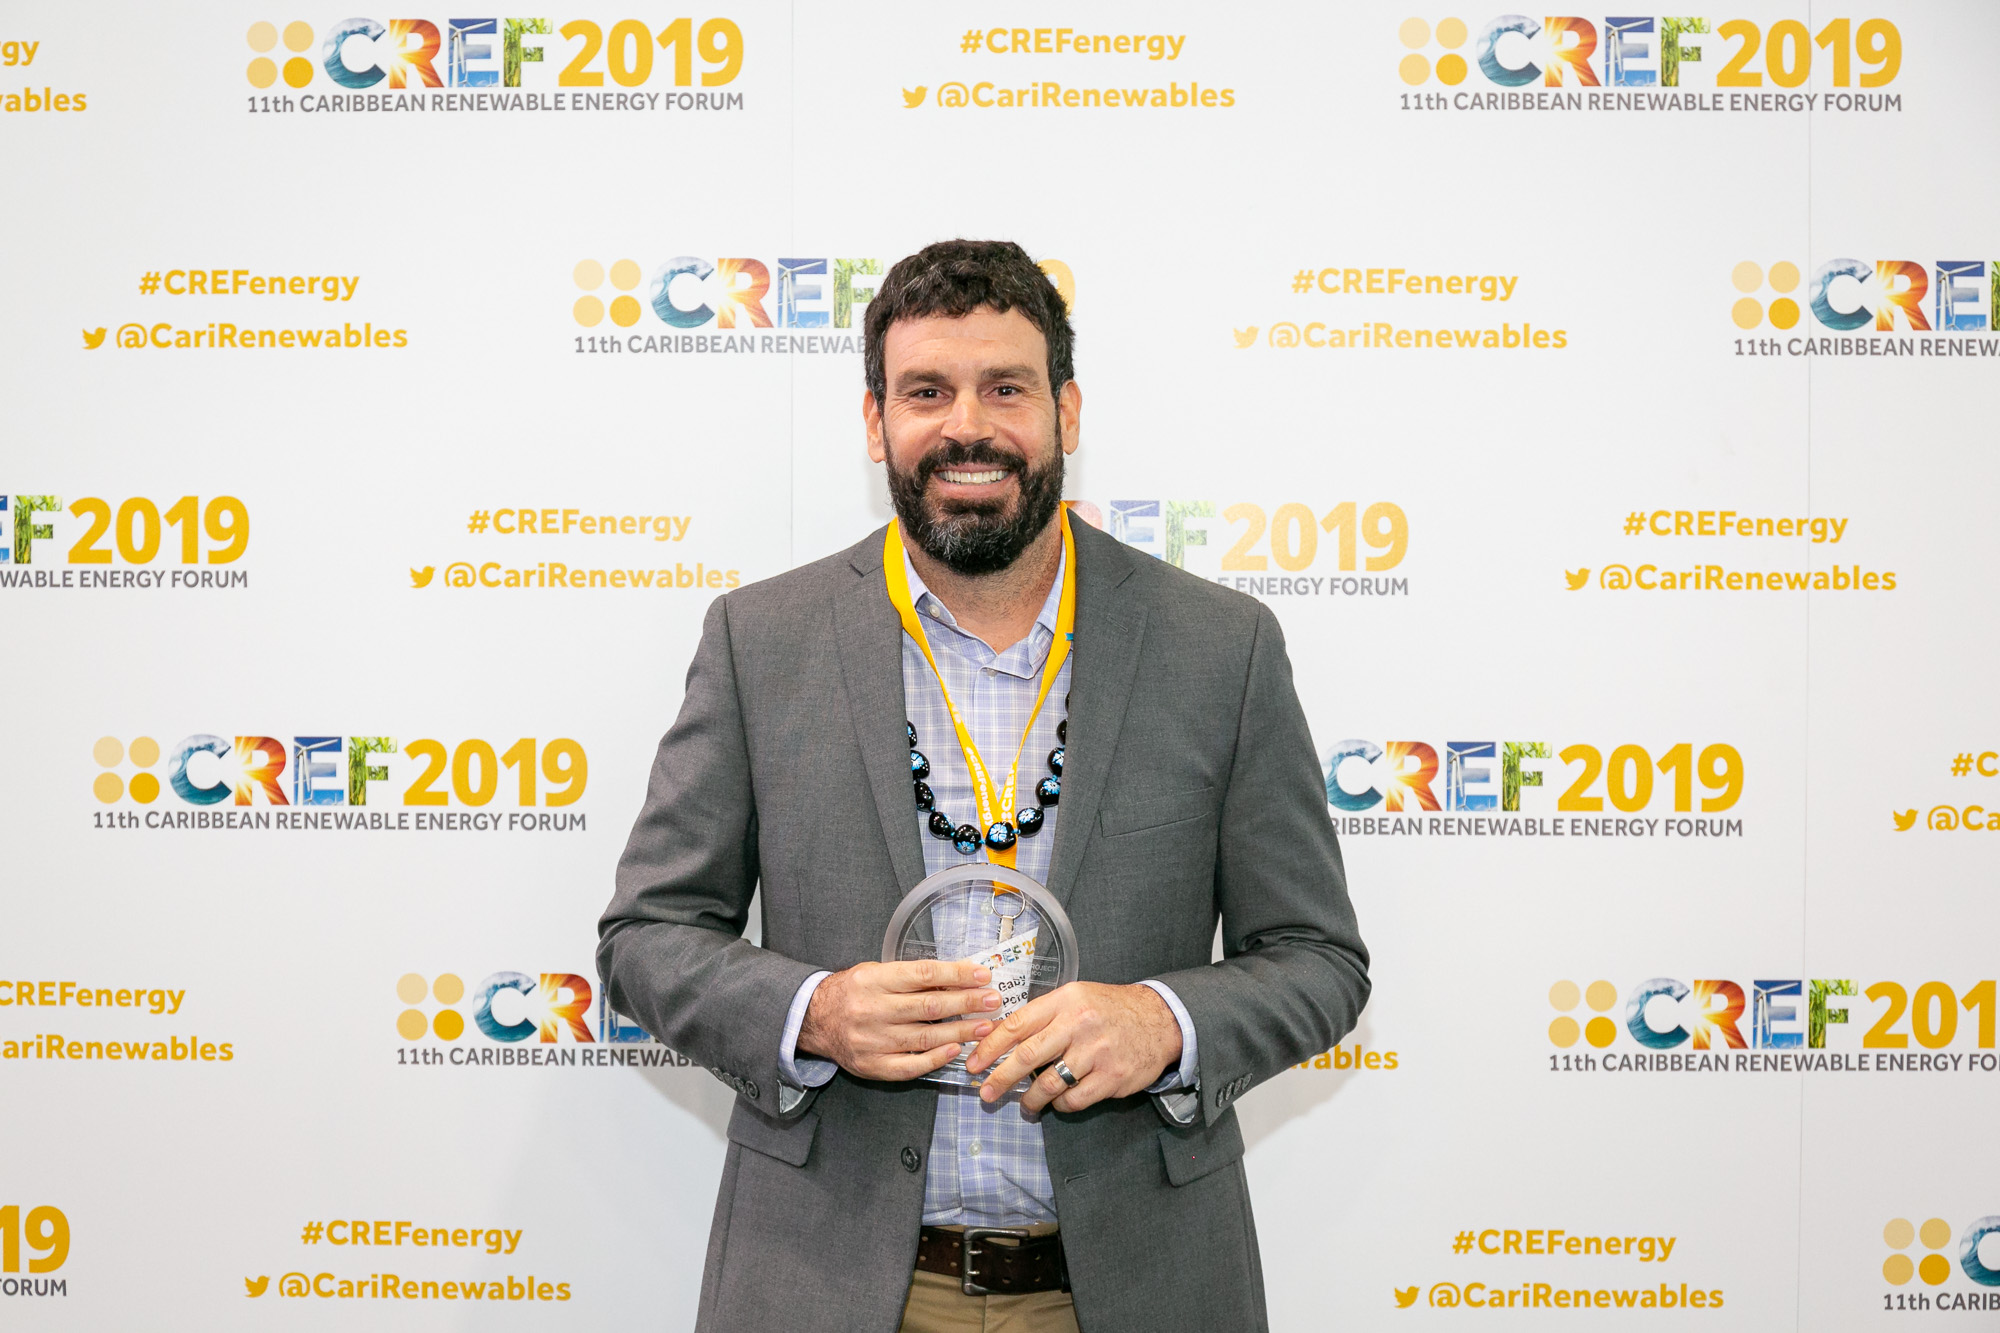 CREF 2019: Award Winners